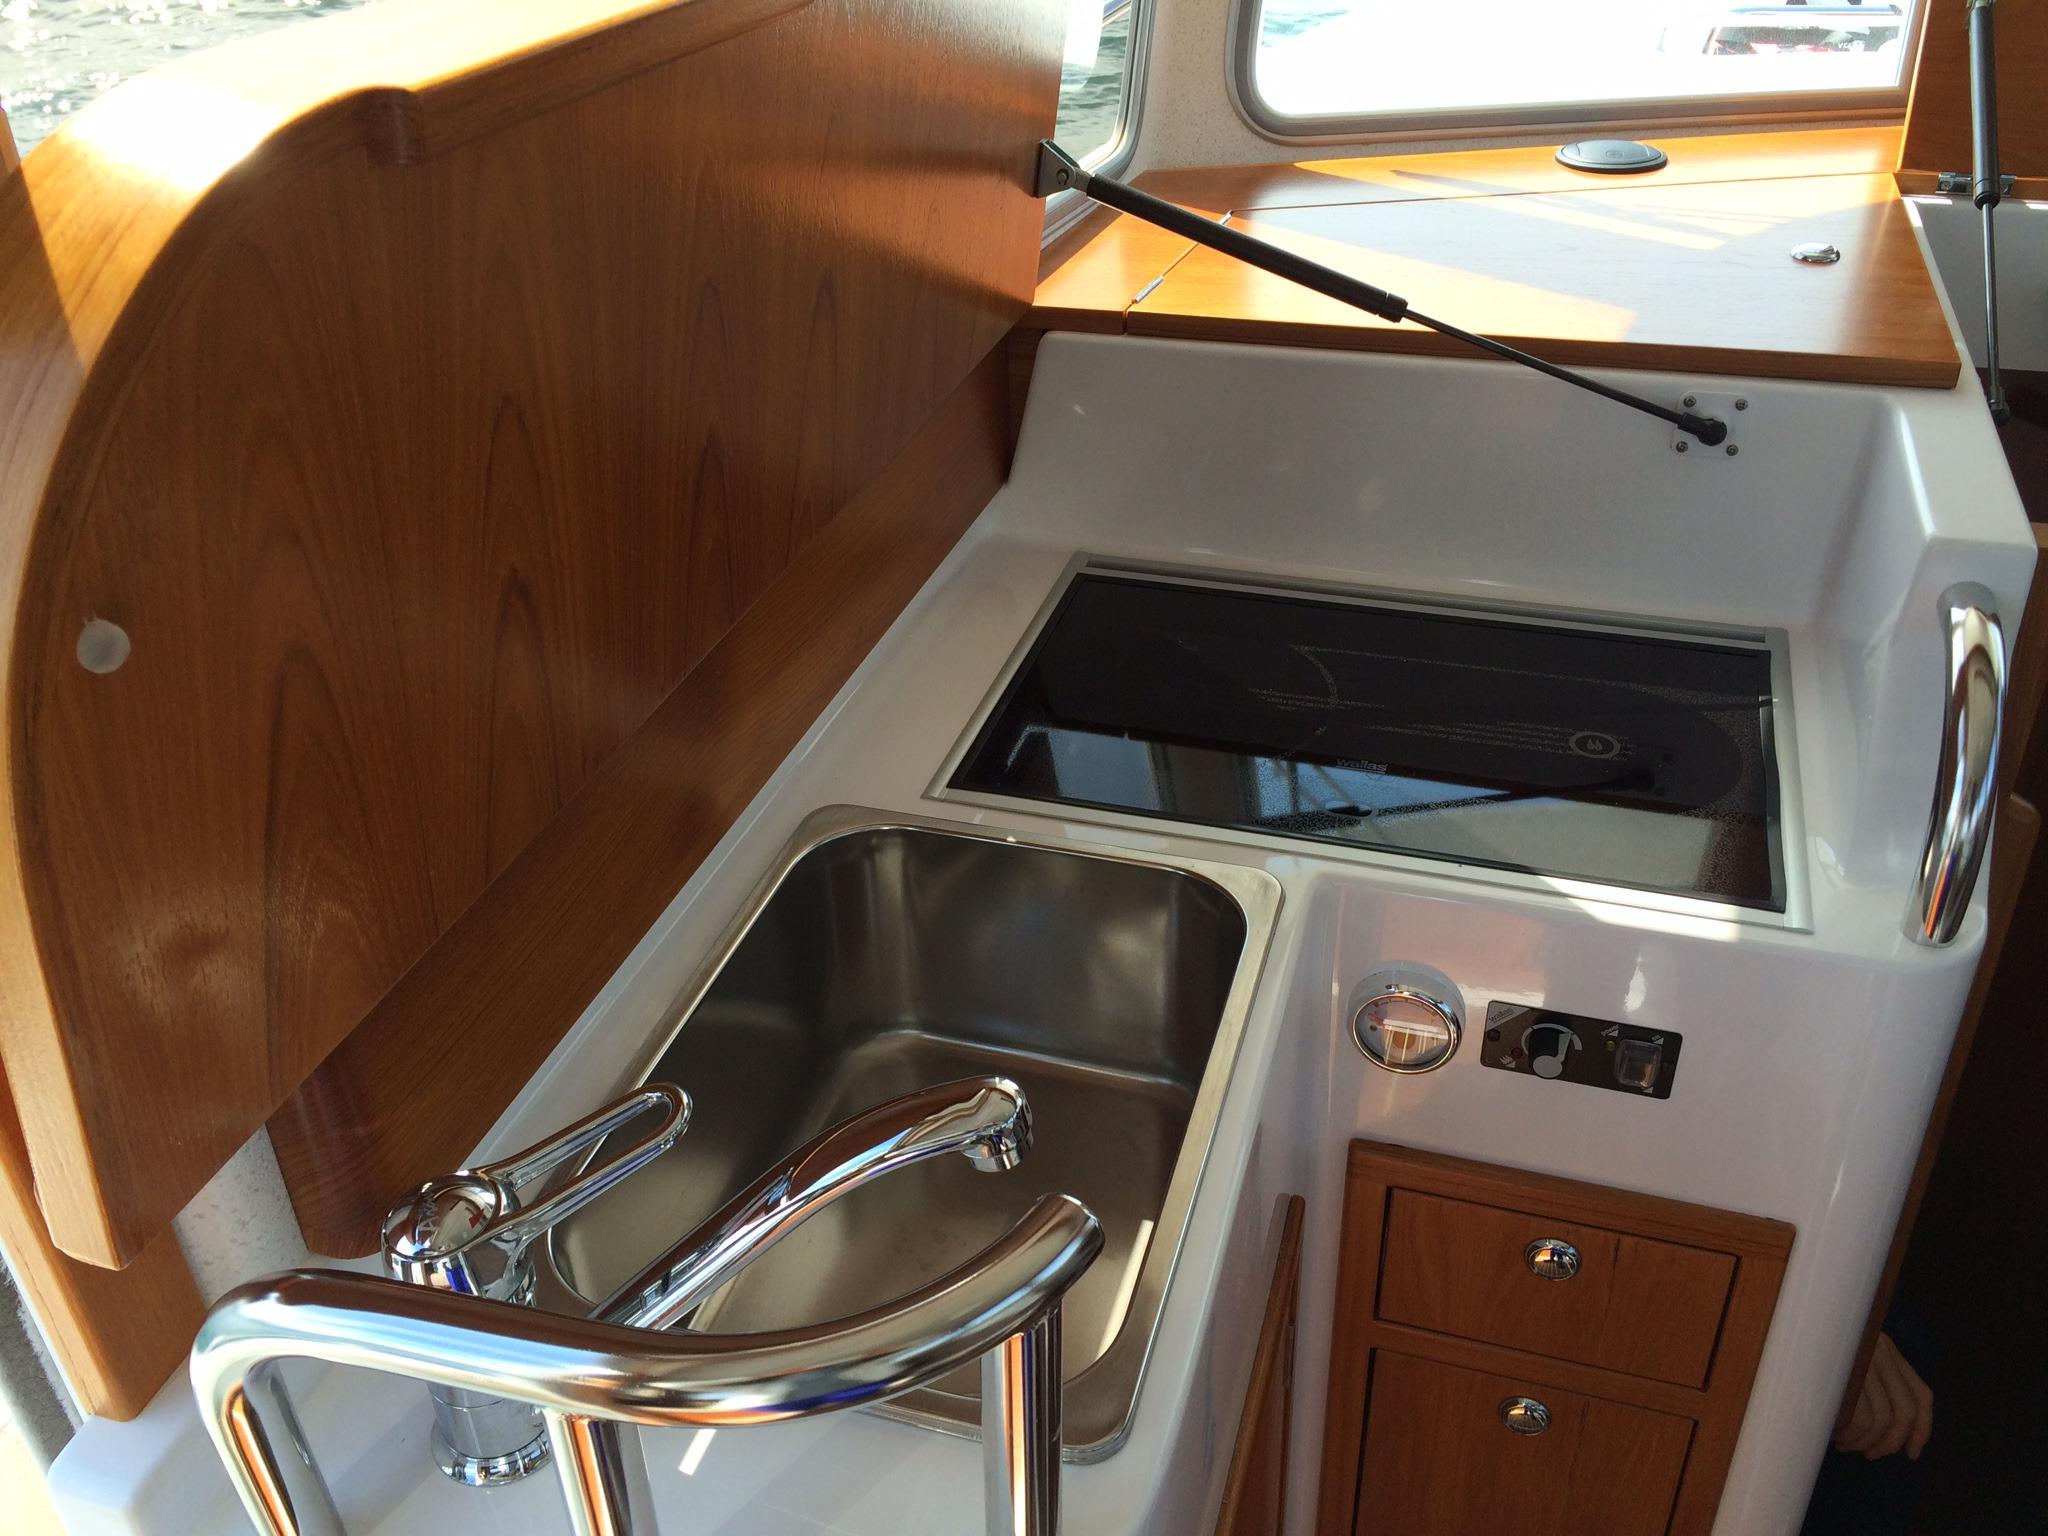 Minor Offshore 31 for sale - galley top